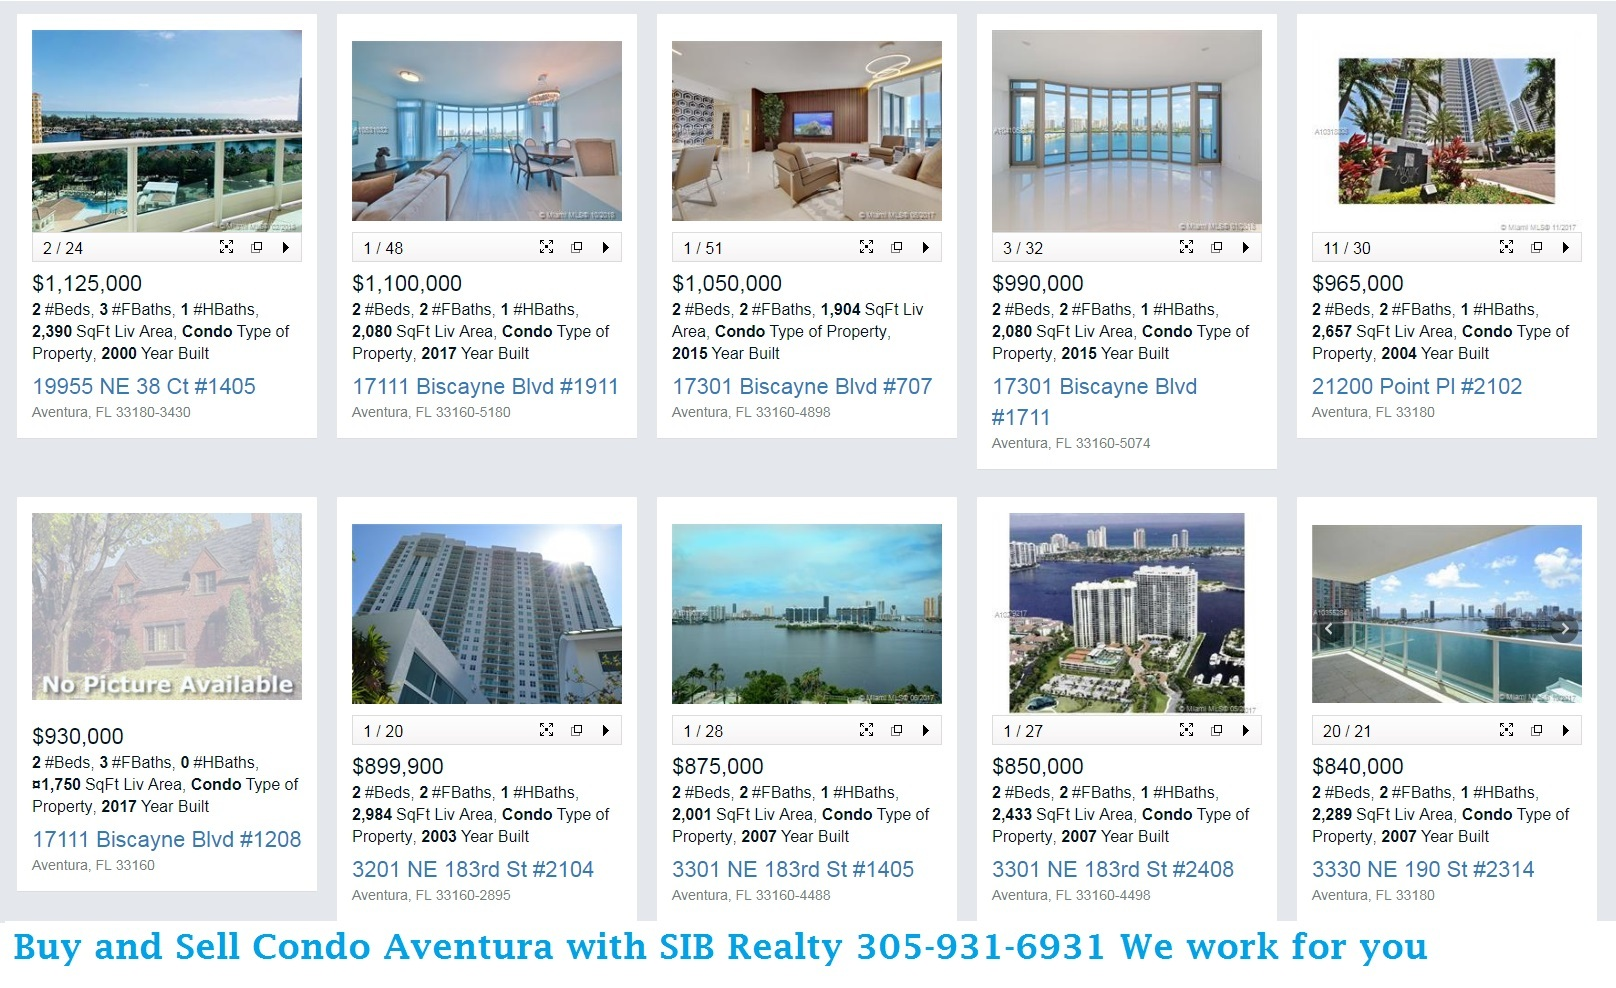 Two Bedroom Condos Sold  in Aventura in 2018 View our website SIB Realty or Call for details Evelina Tsigelnitskaya